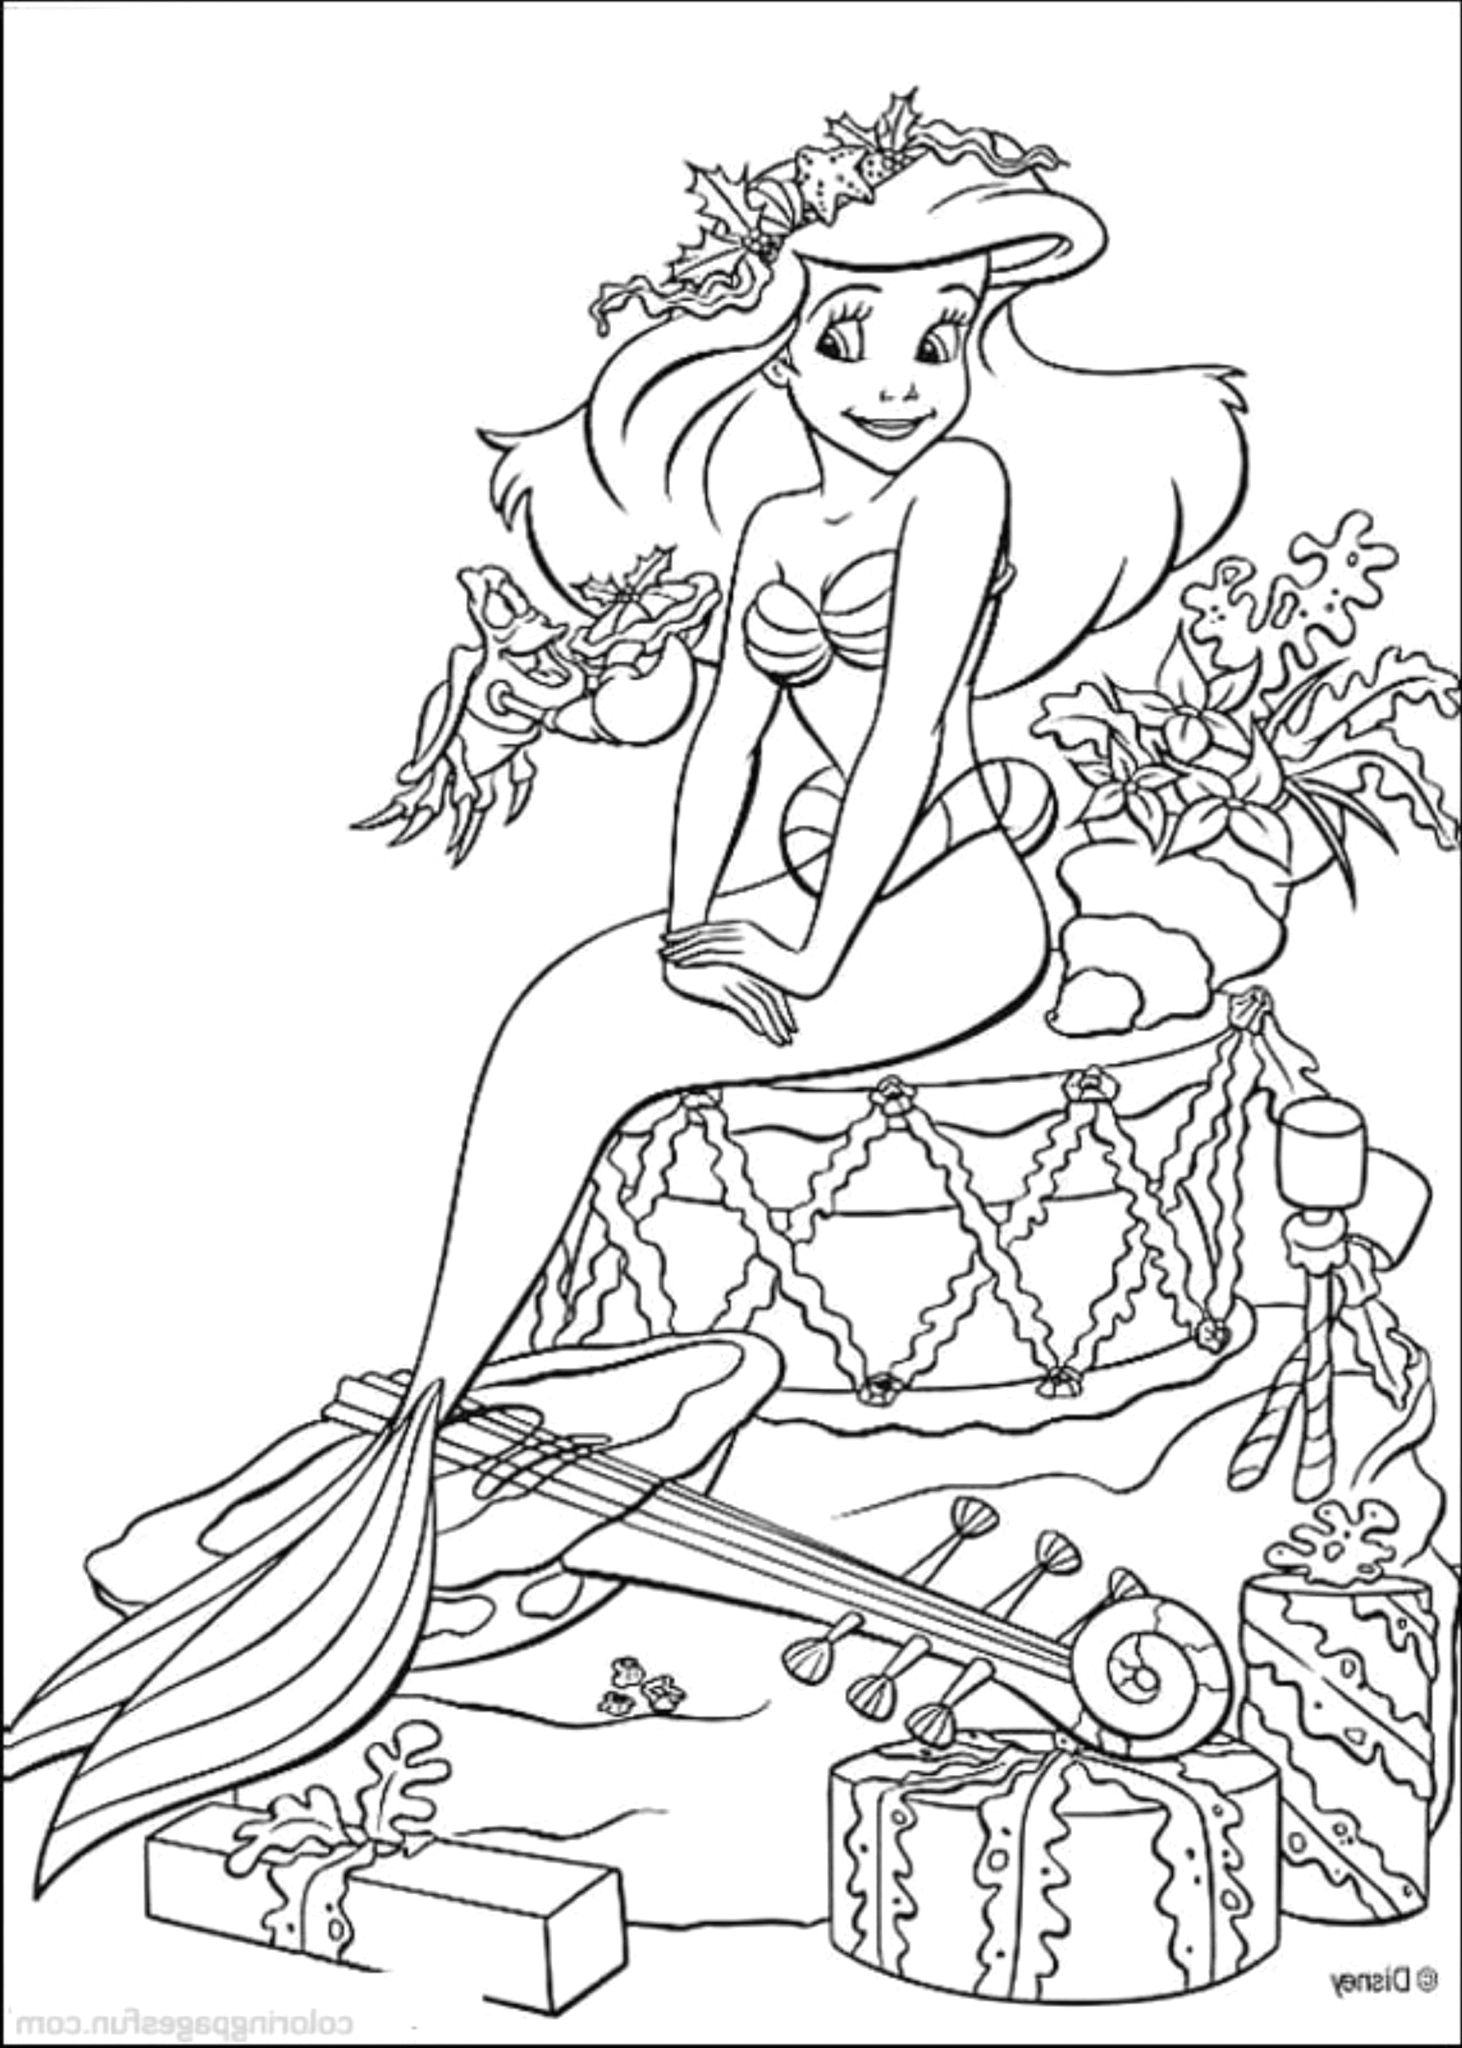 The Little Mermaid Coloring Pages Free to Print Print & Download Find the Suitable Little Mermaid